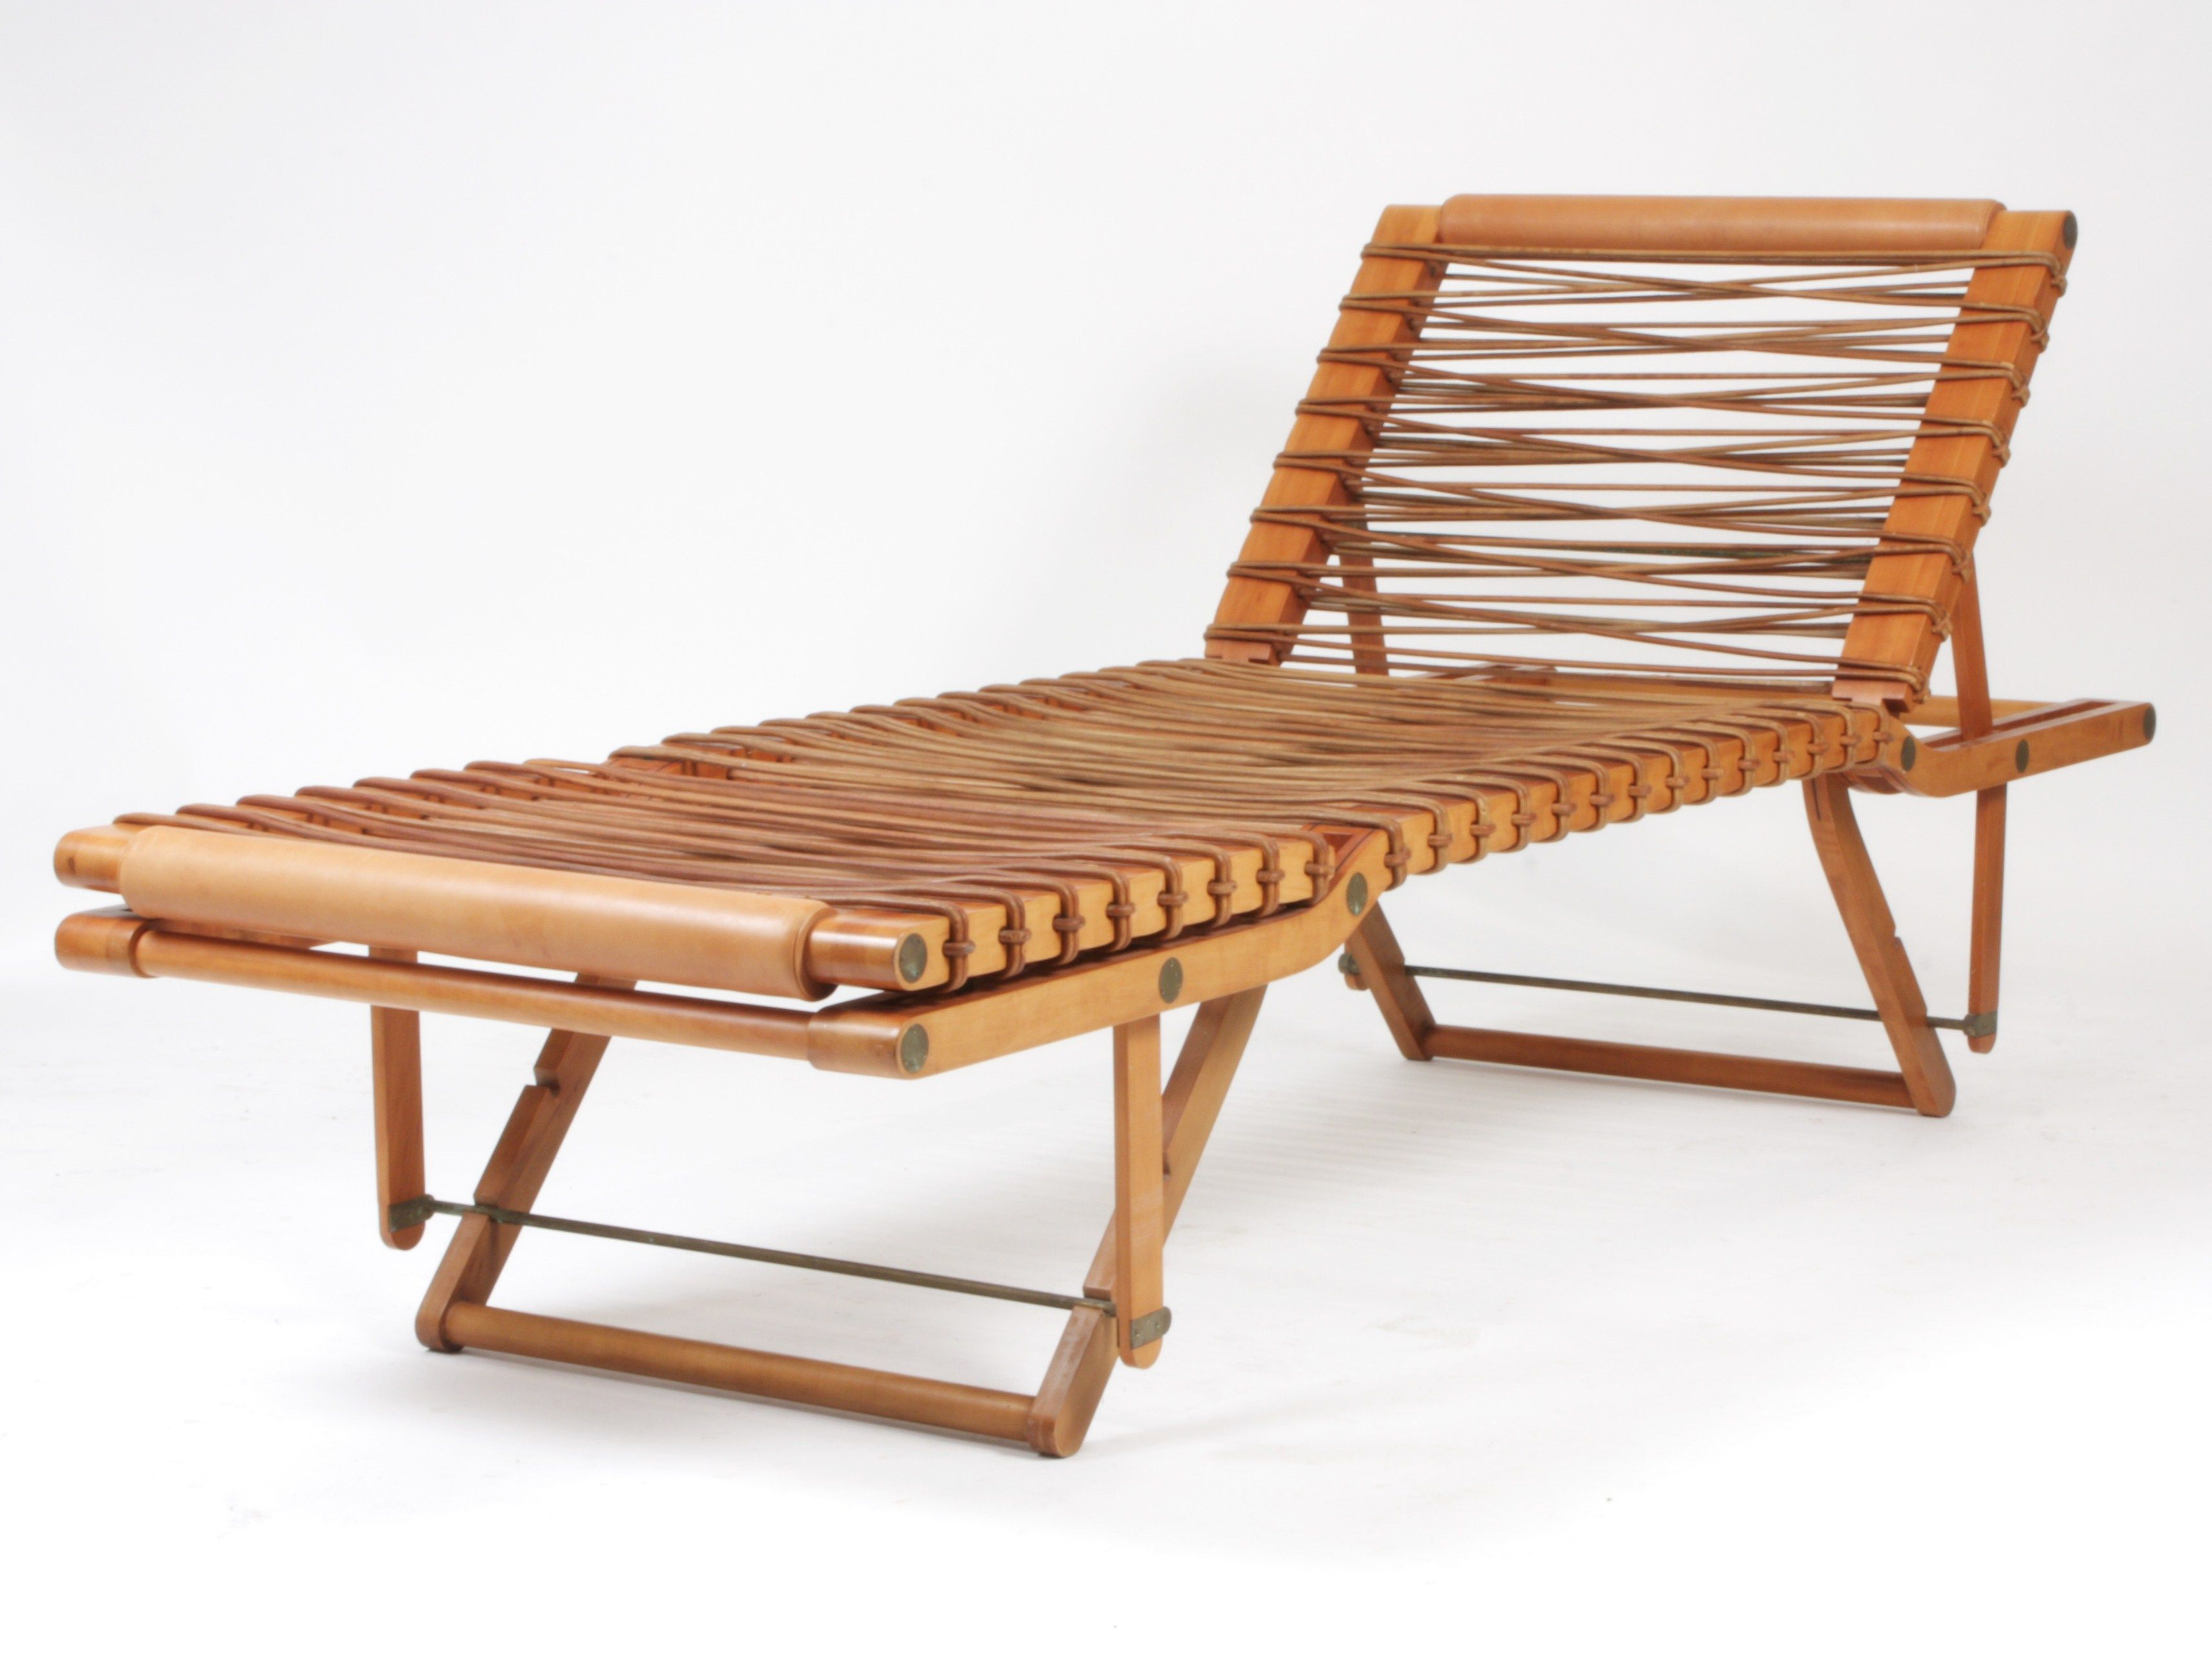 rena dumas chaise lounge | Outdoor Furniture | Pinterest | Chaise ...